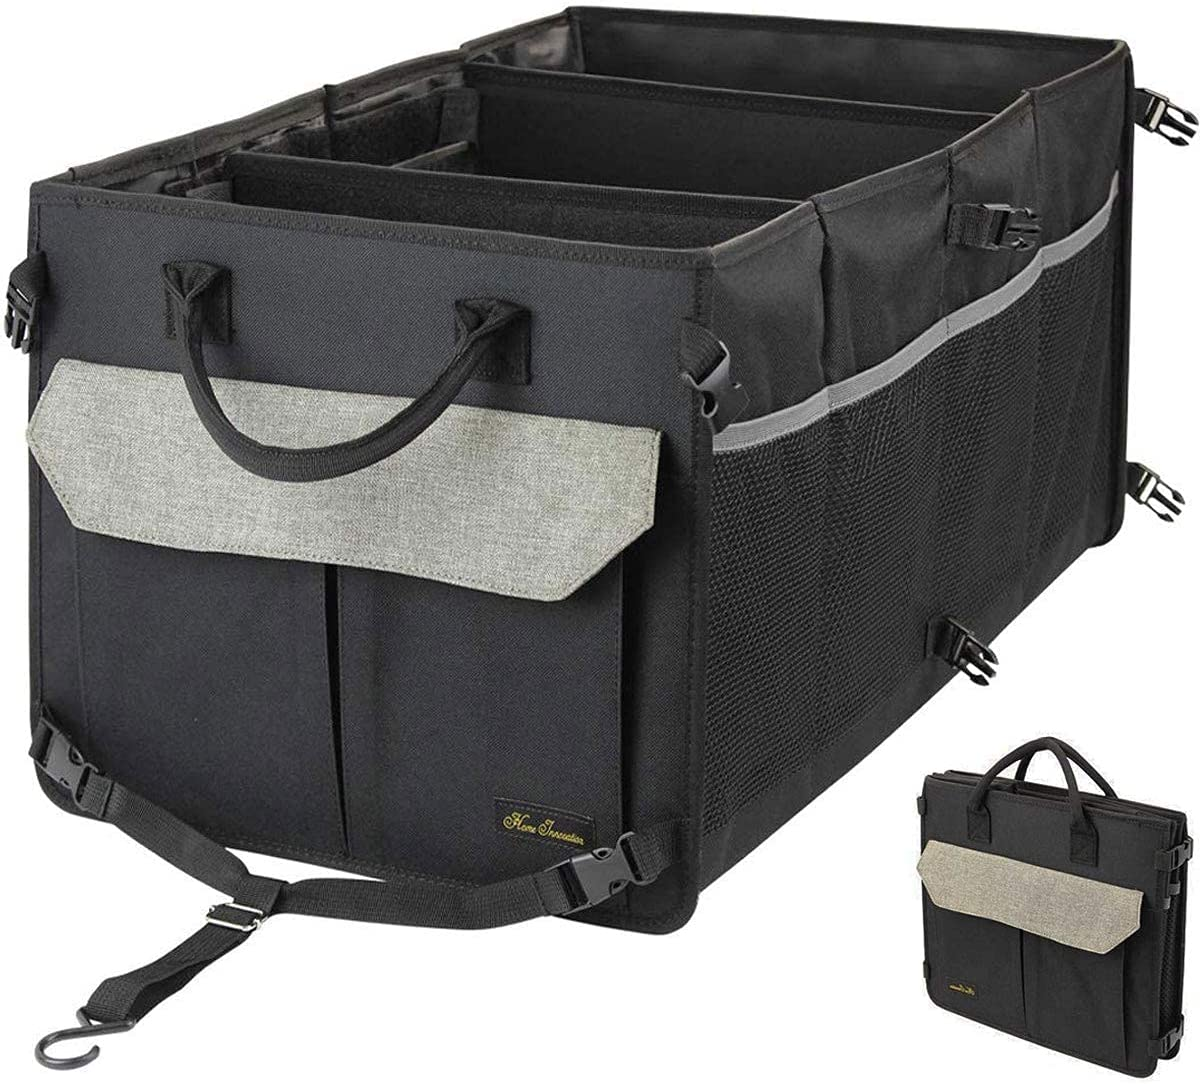 Befano Car Trunk Organizer SUV Straps 2 Compartments, Black Non-Slip Waterproof Bottom Foldable Lid Cargo Trunk Organizers and Storage